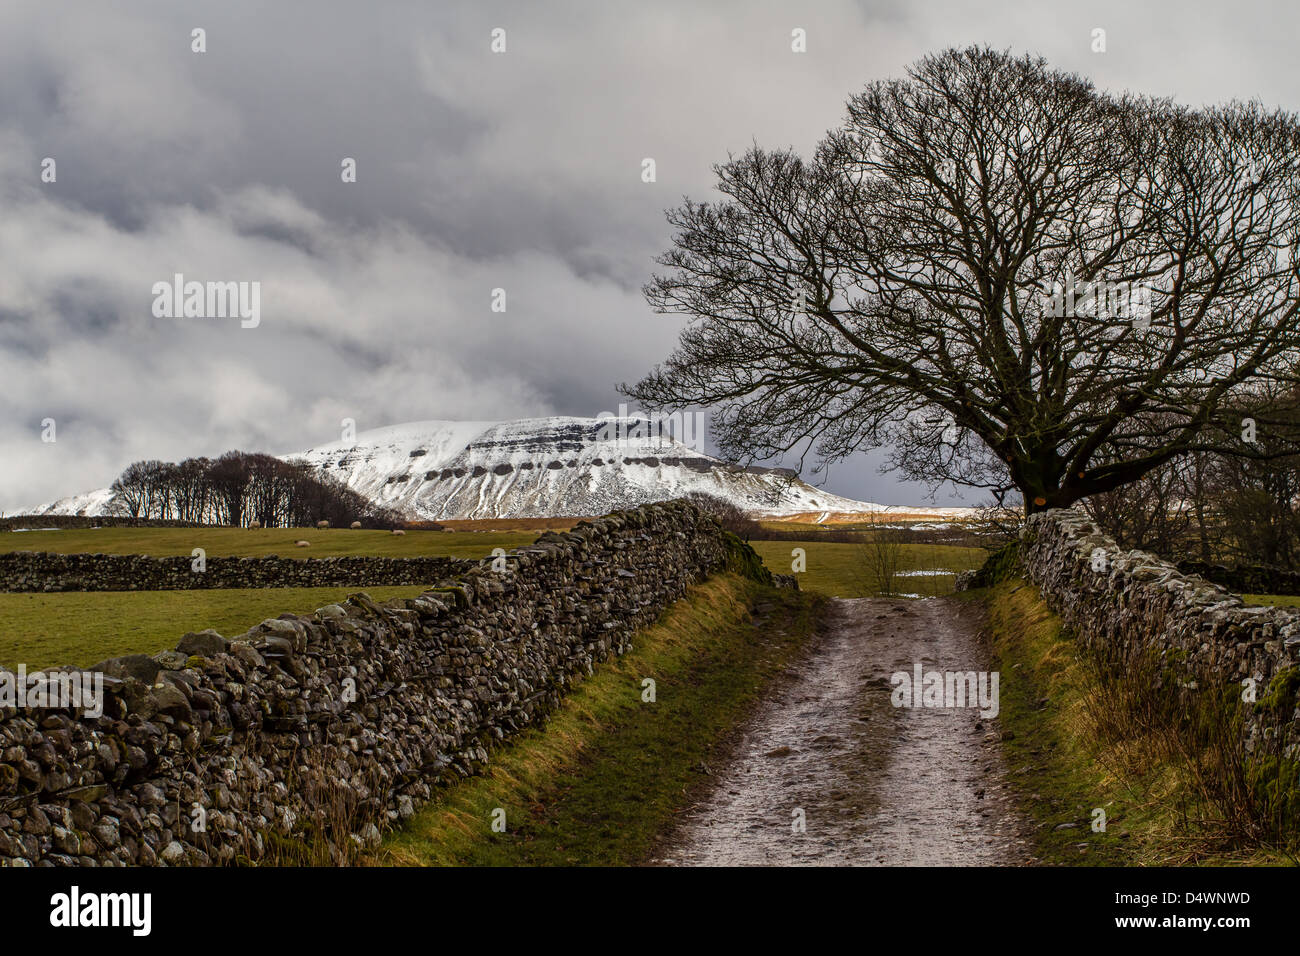 Heading up towards Pen-y-Ghent, one of the Yorkshire 3 Peaks - Stock Image